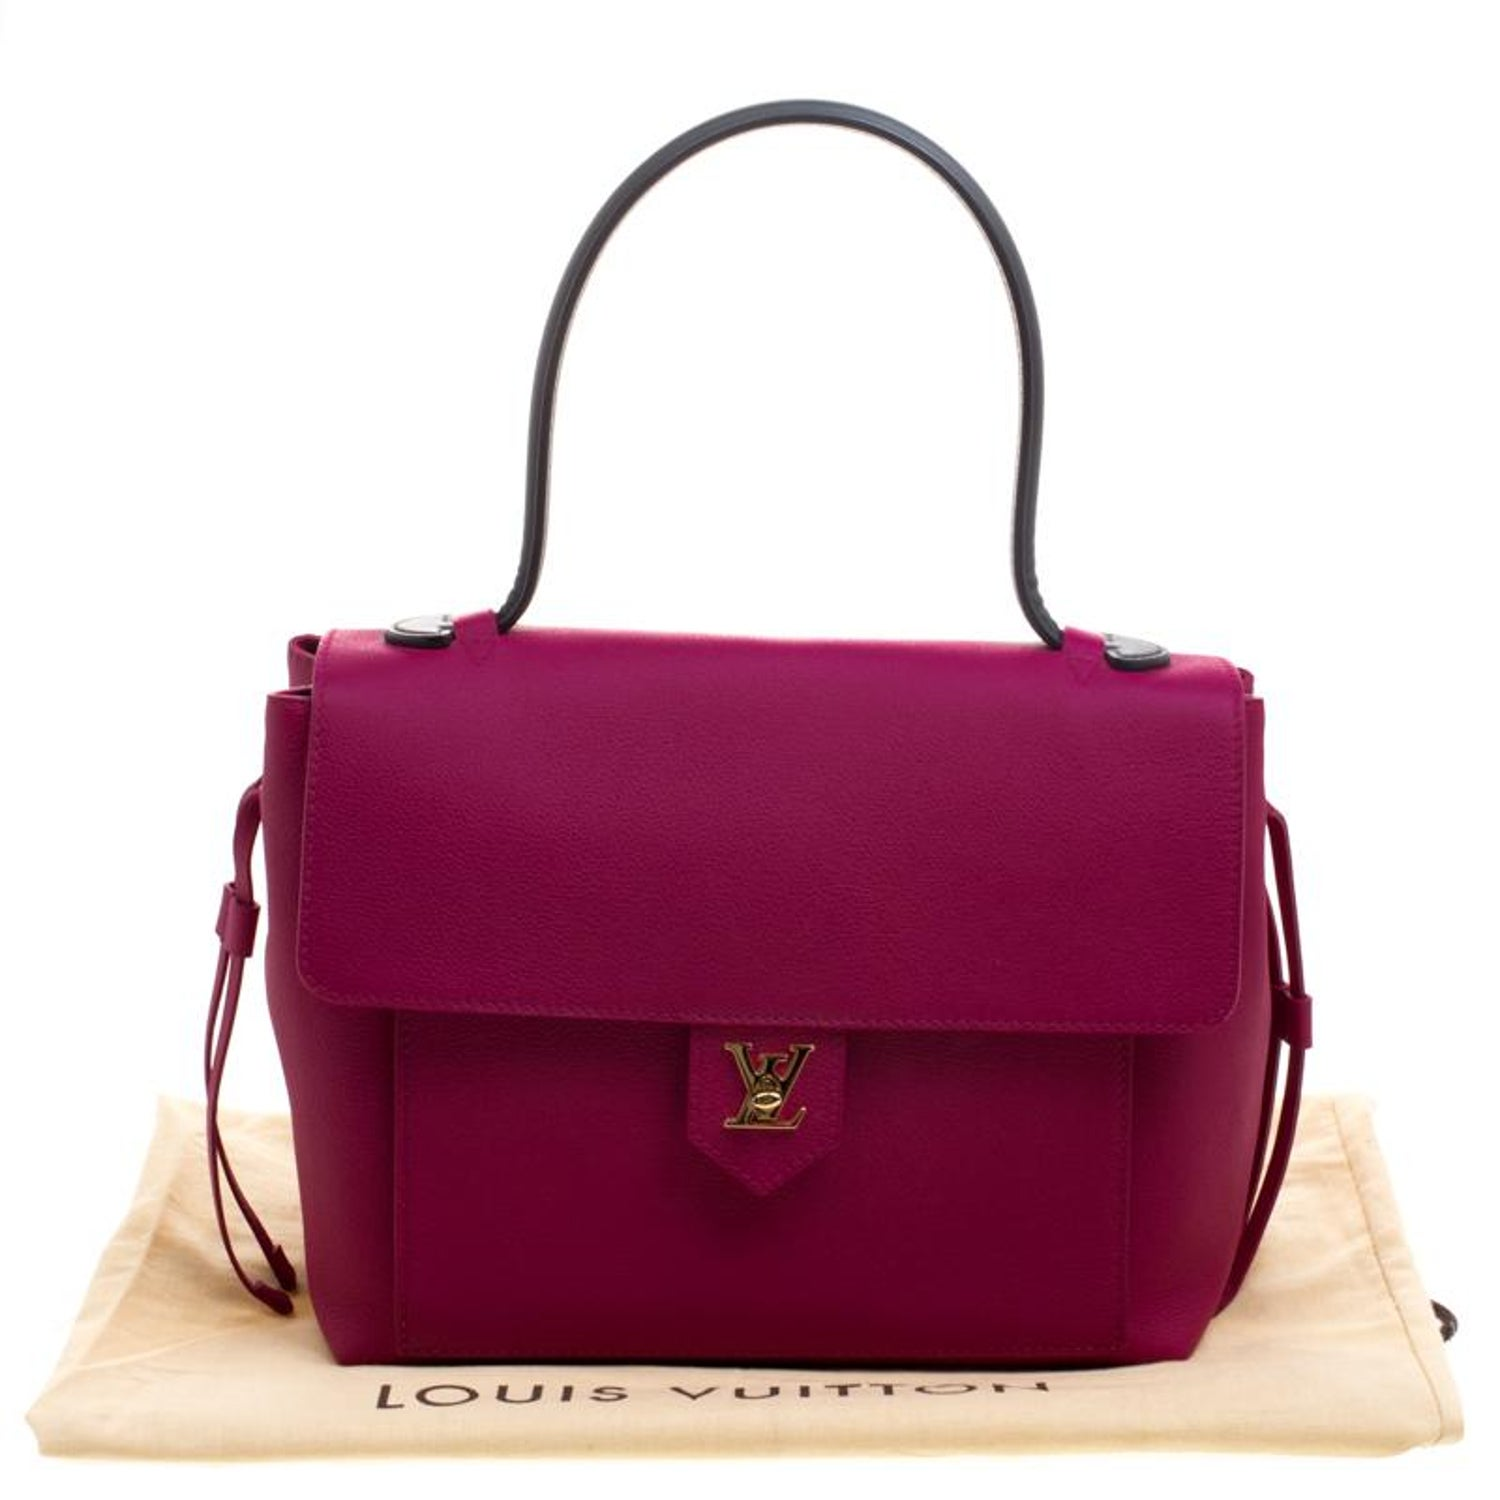 3641115a745a Louis Vuitton Purple Leather Lockme PM Bag For Sale at 1stdibs